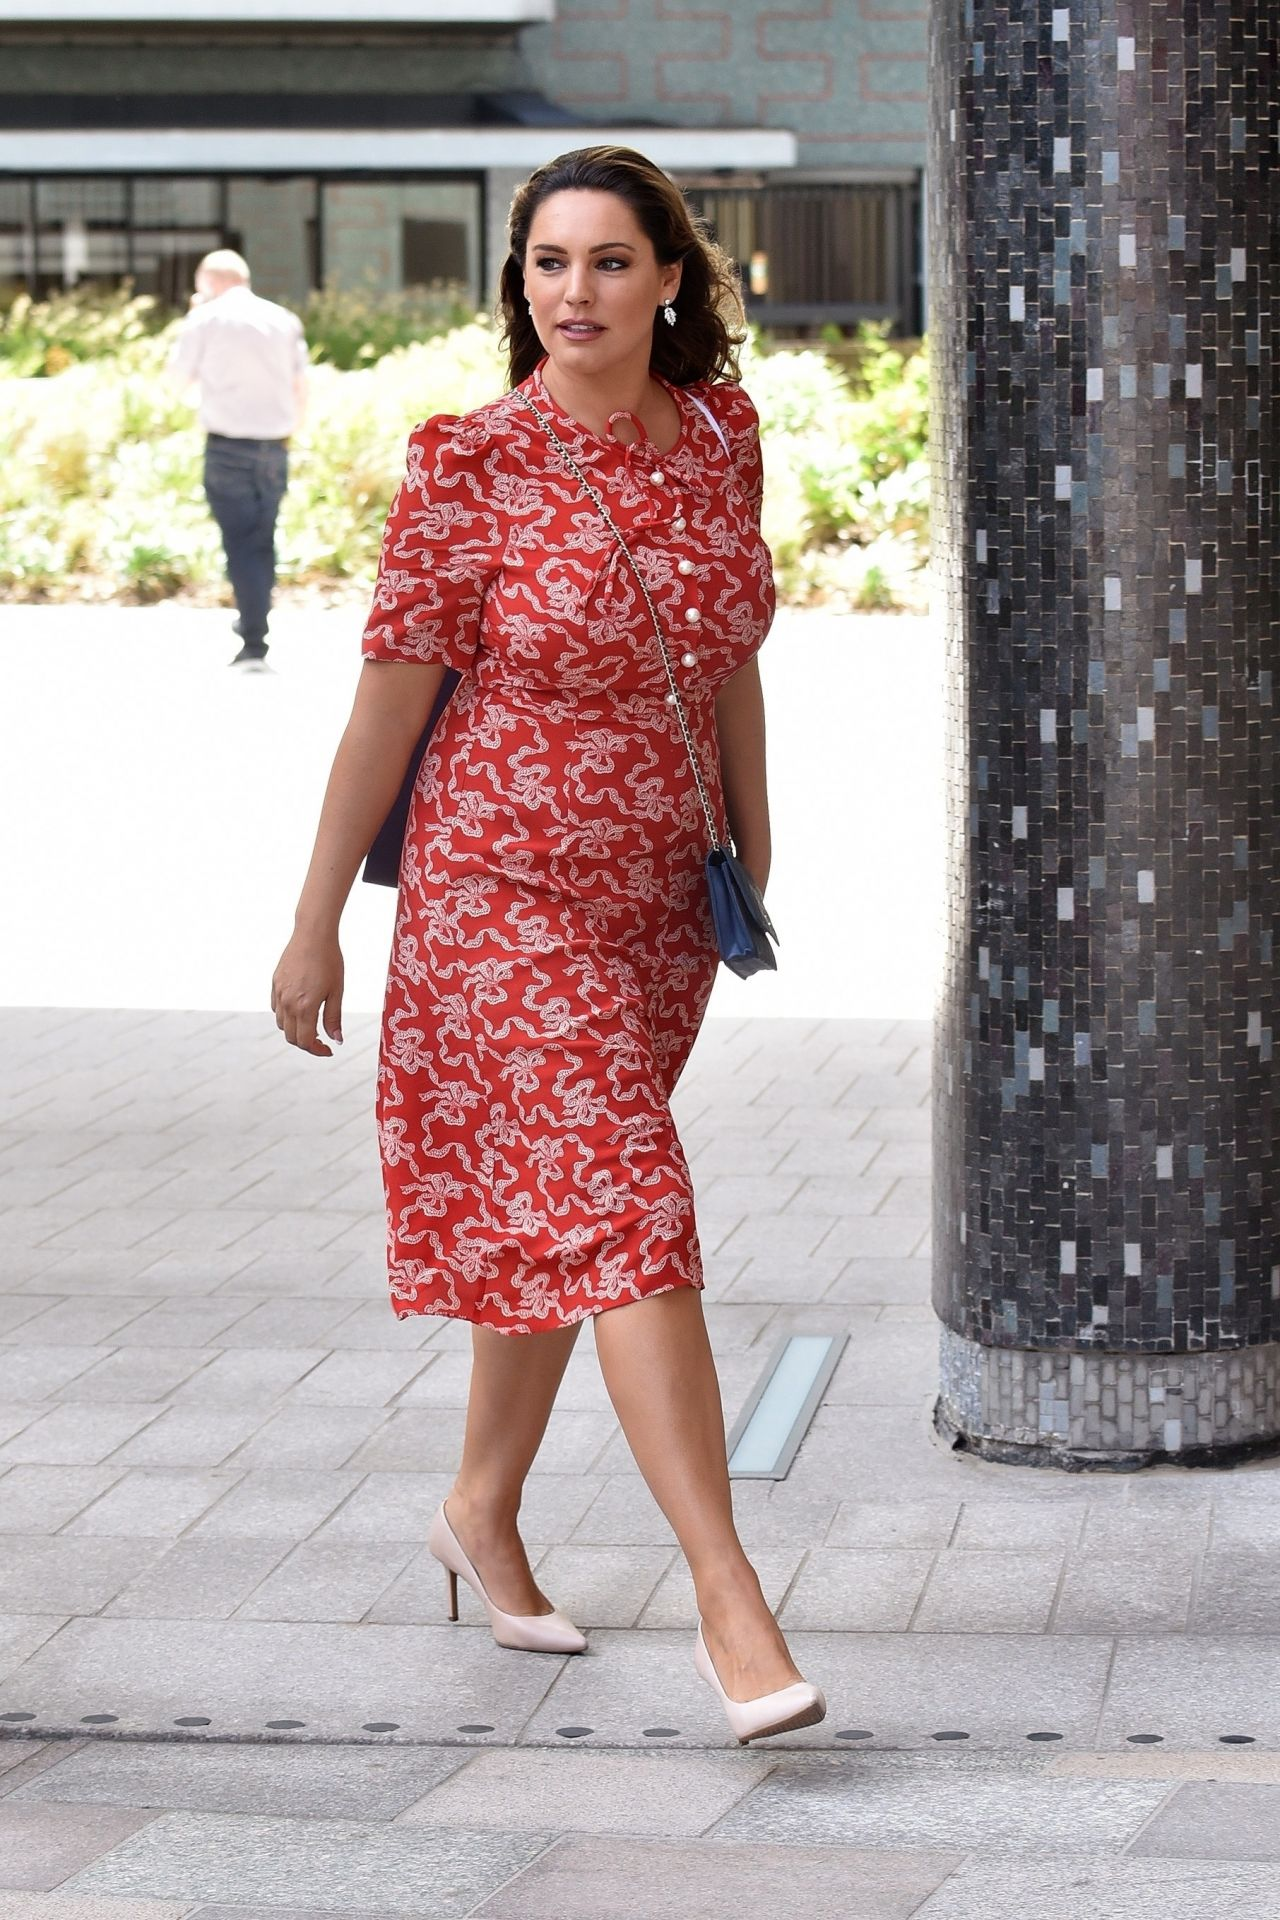 kelly-brook-at-the-itv-studios-in-london-06-11-2018-6.jpg